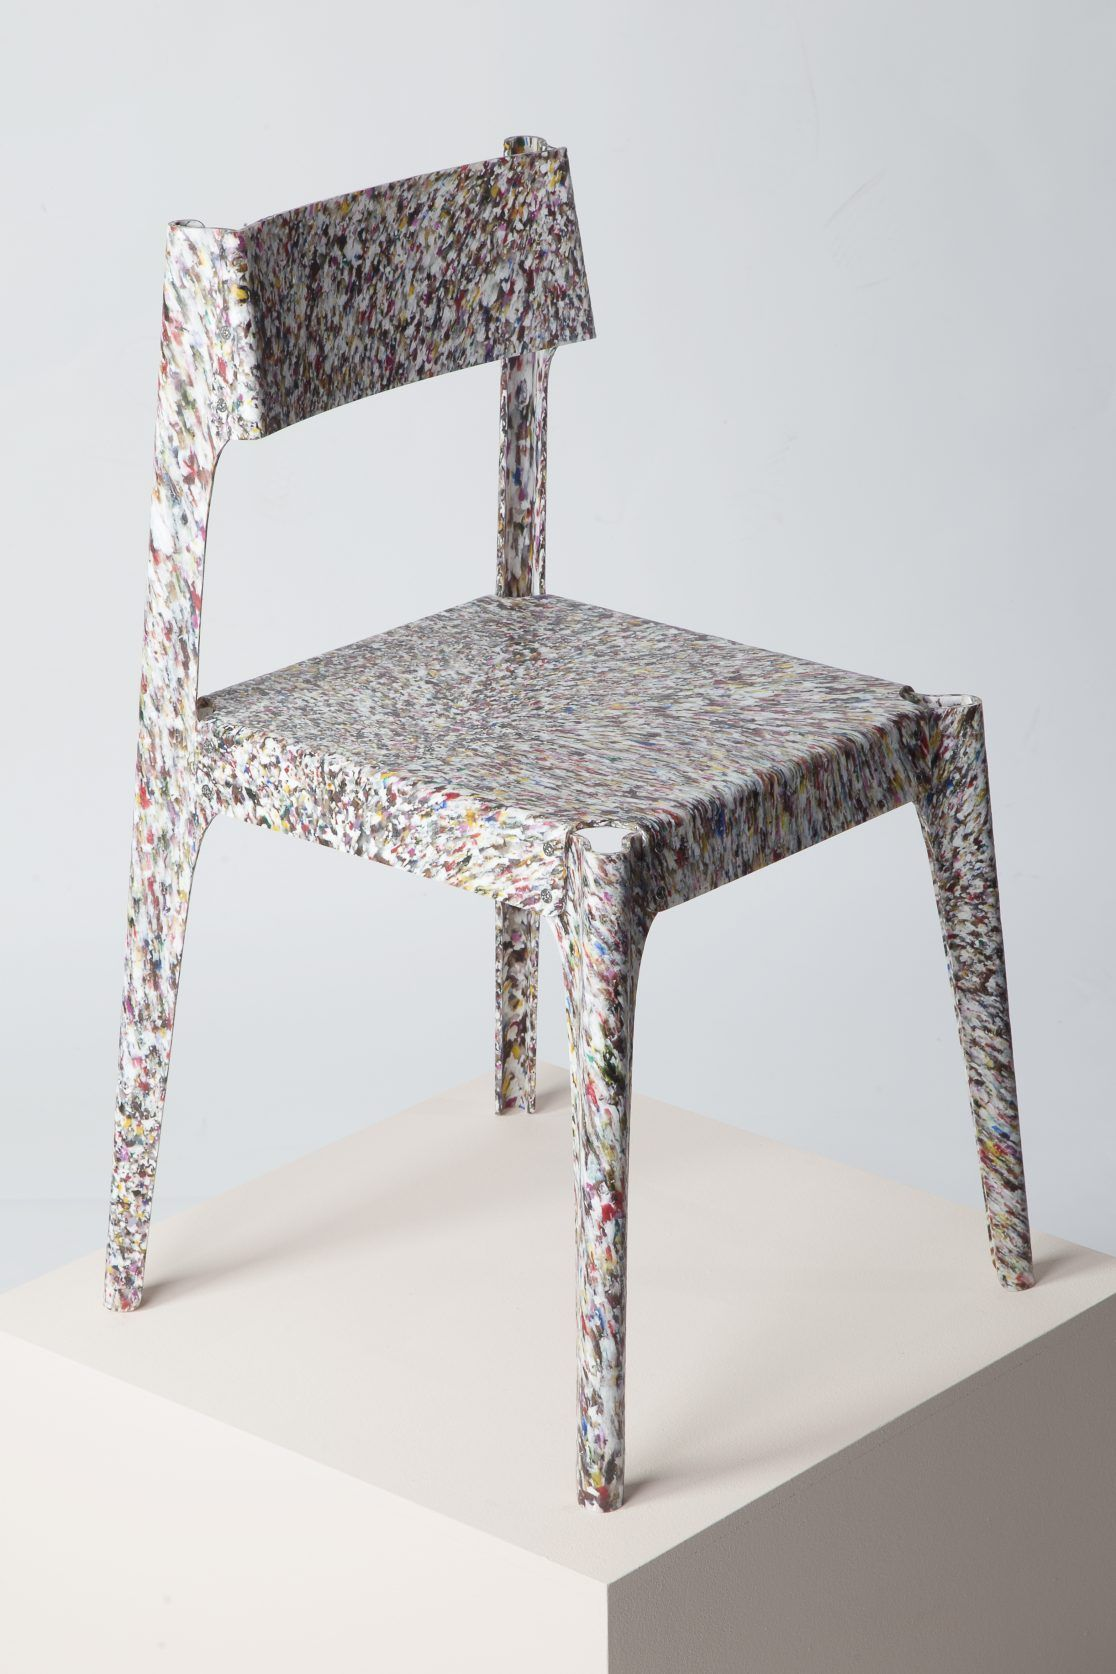 Substantial Chair Recycled Plastic Furniture Recycled Plastic Chair Minimalist Chair